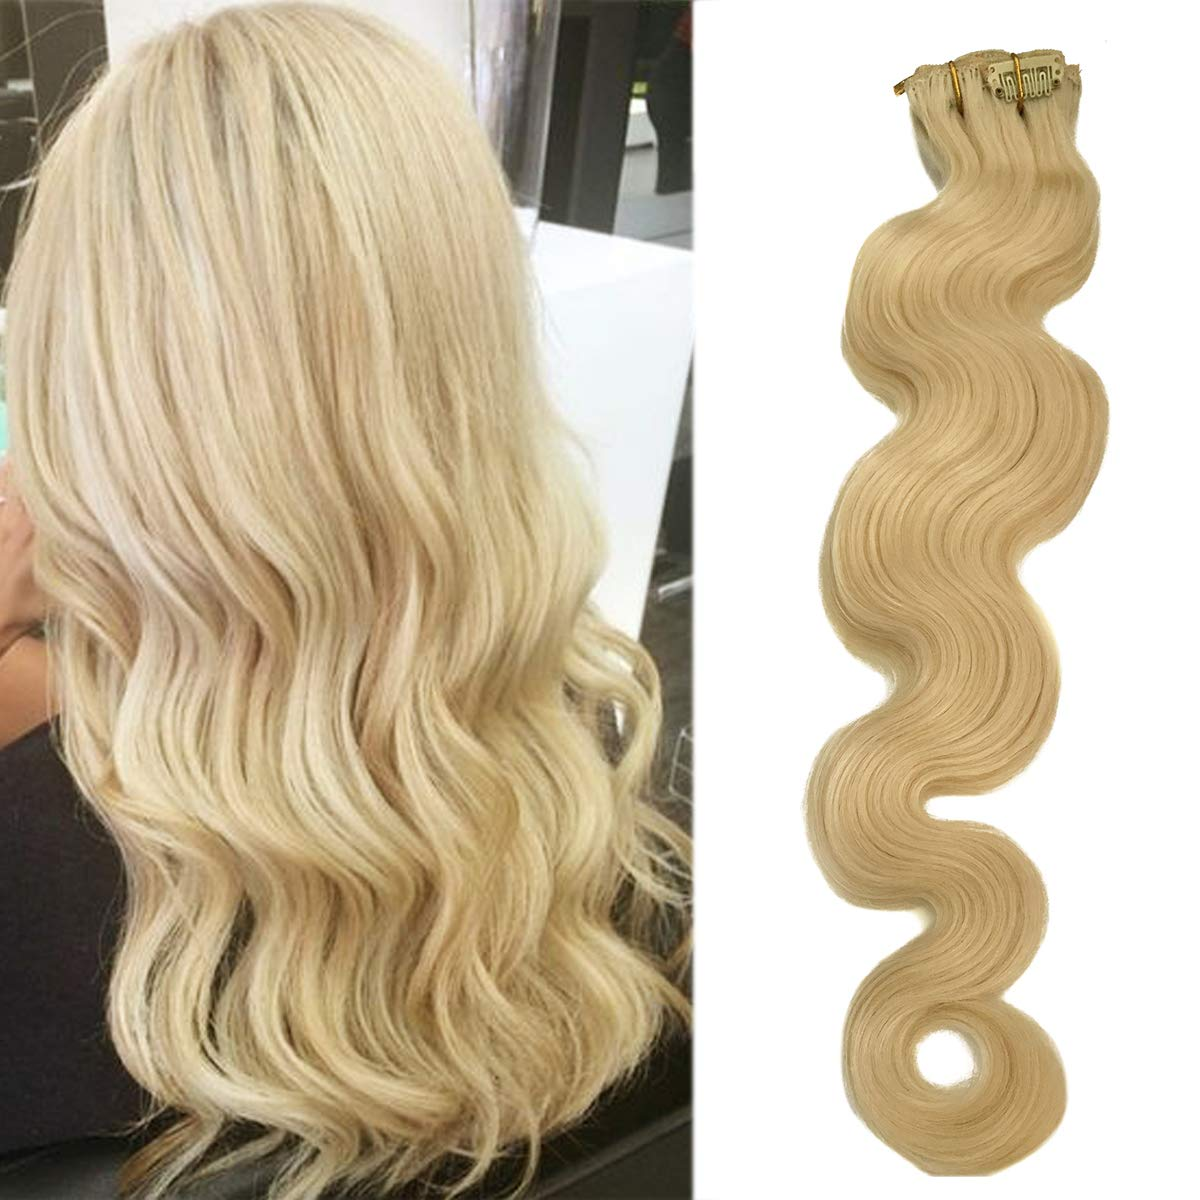 clip in hair extensions nz